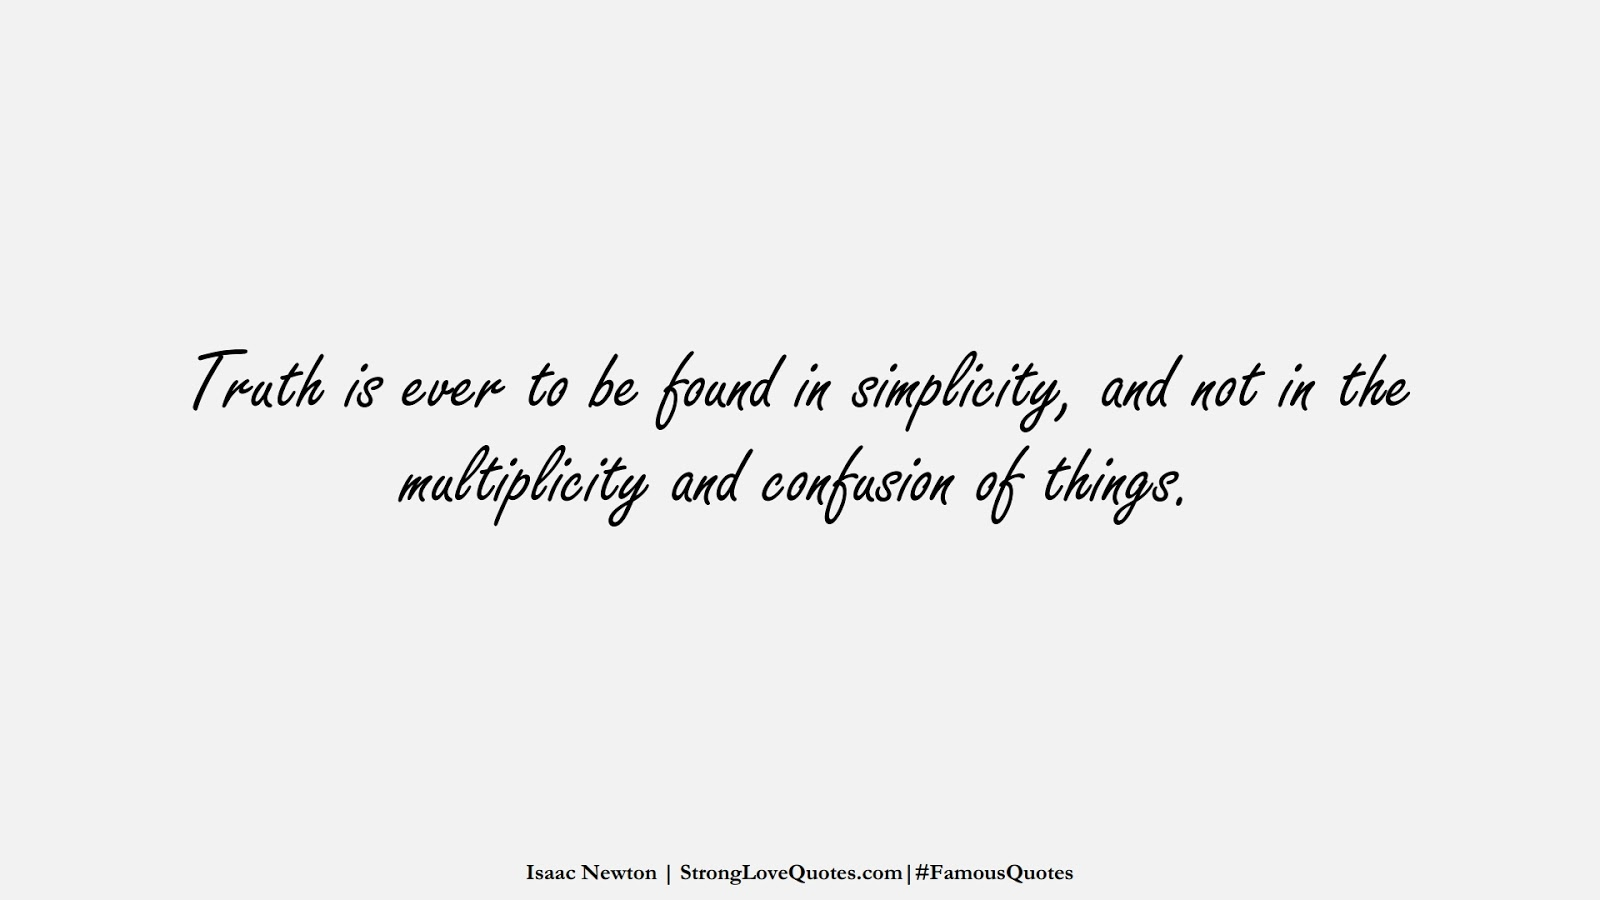 Truth is ever to be found in simplicity, and not in the multiplicity and confusion of things. (Isaac Newton);  #FamousQuotes